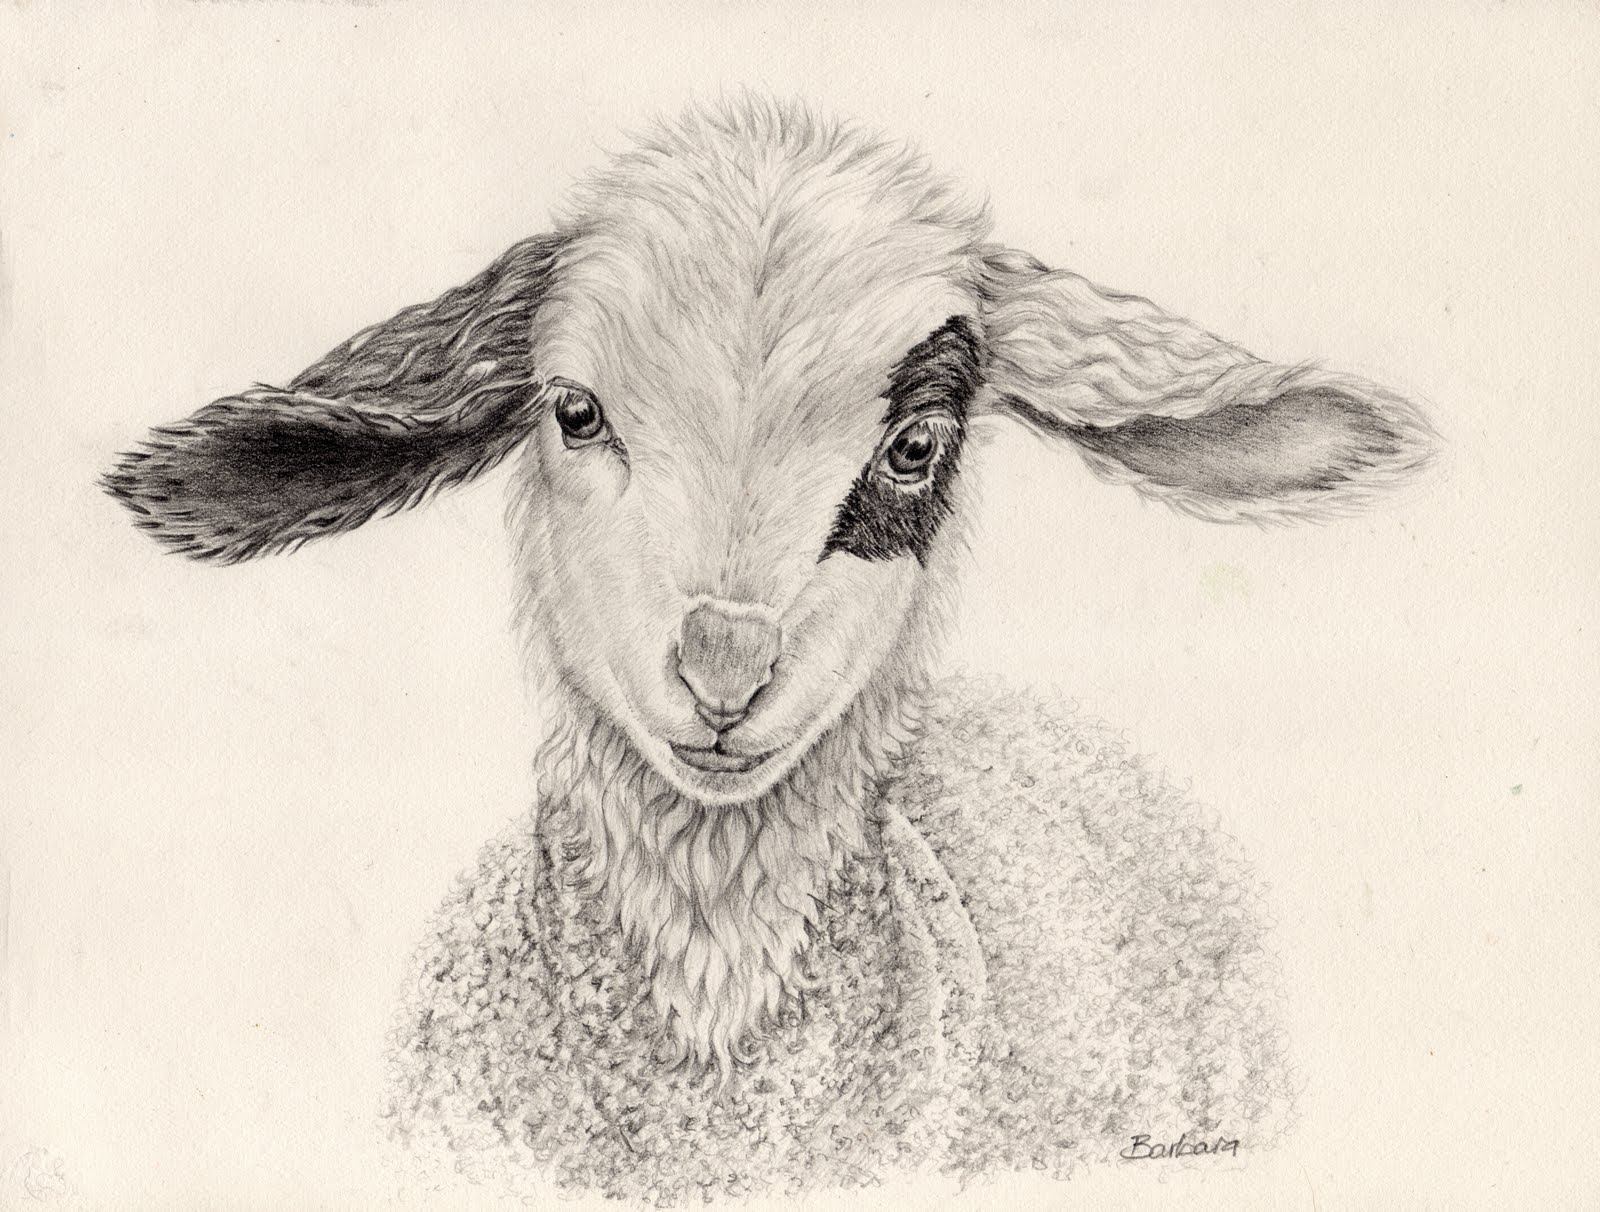 Drawn sheep pencil drawing Nature: in Sketching Easter